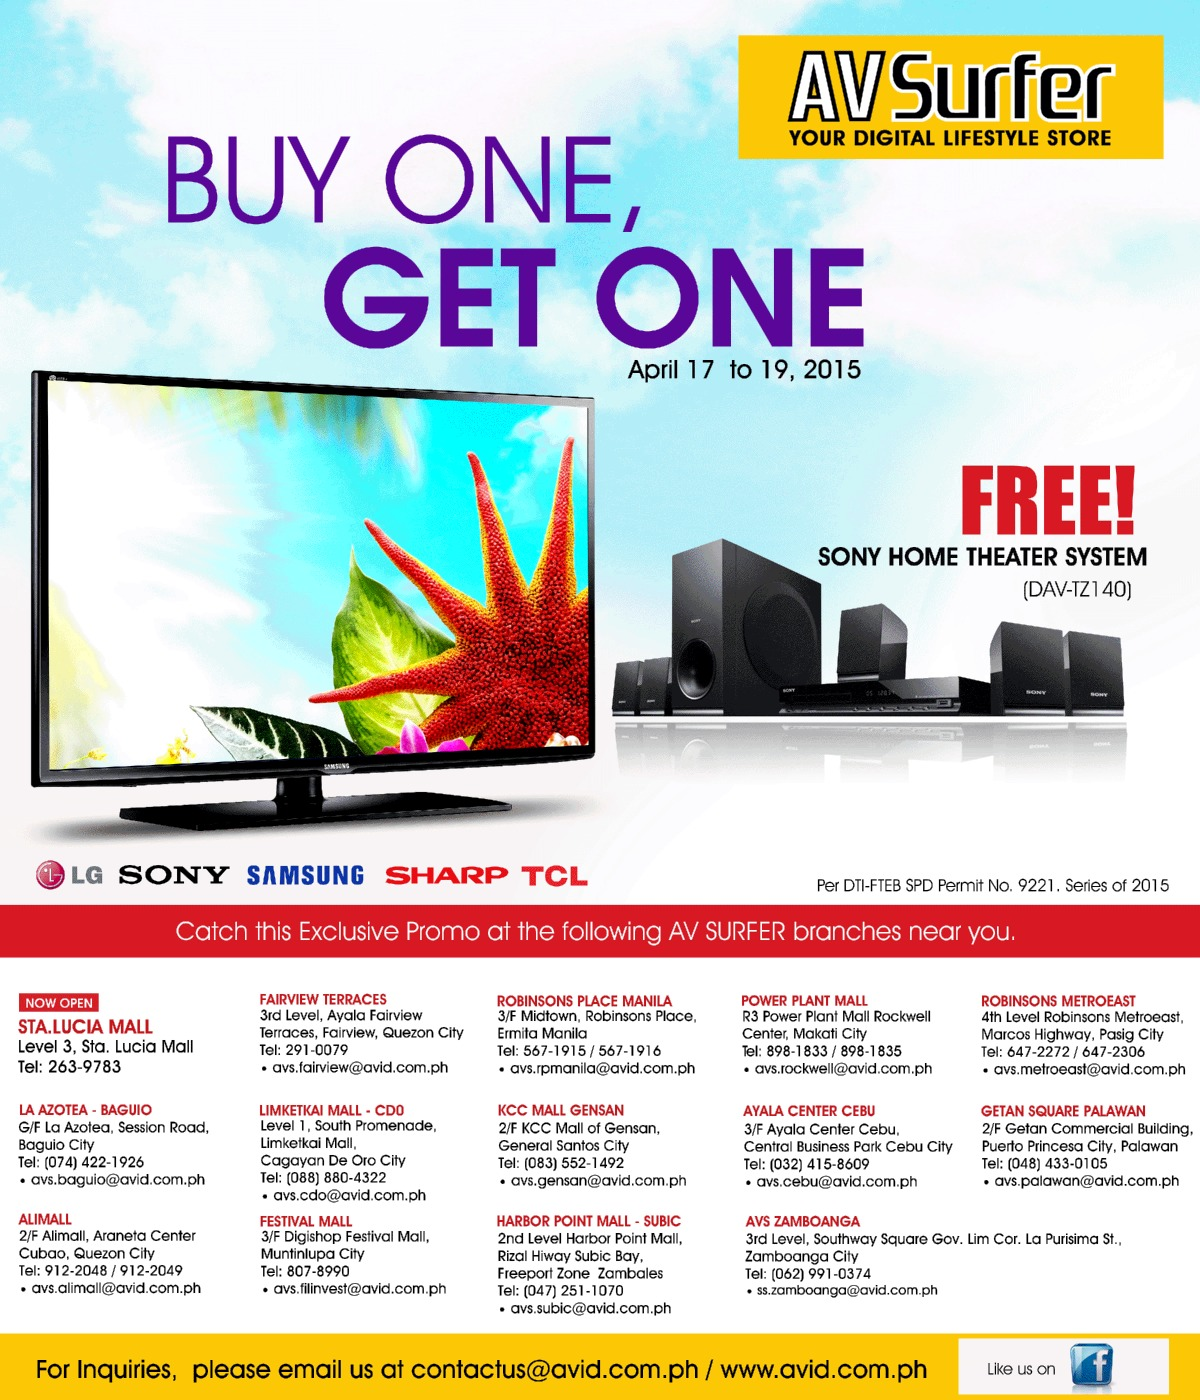 AV Surfer Buy 1 Get 1 Free Sony Home Theater System Worth P9,999!